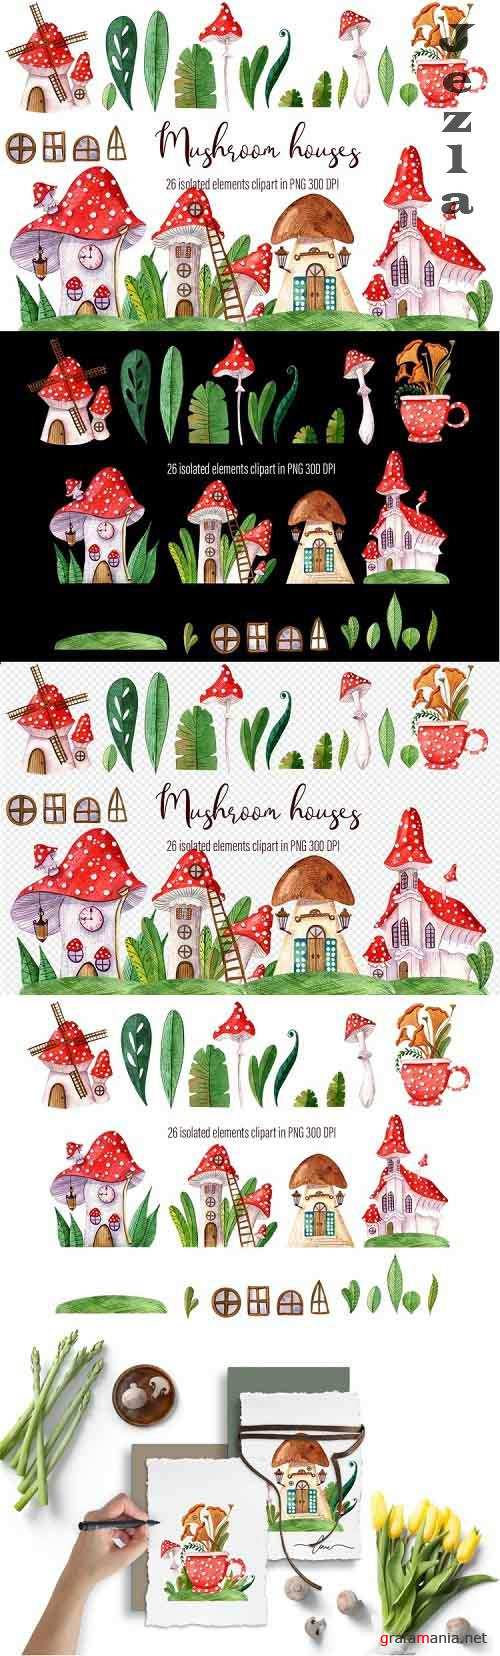 Watercolor hand-drawn set of beautiful Mushroom houses - 1217917